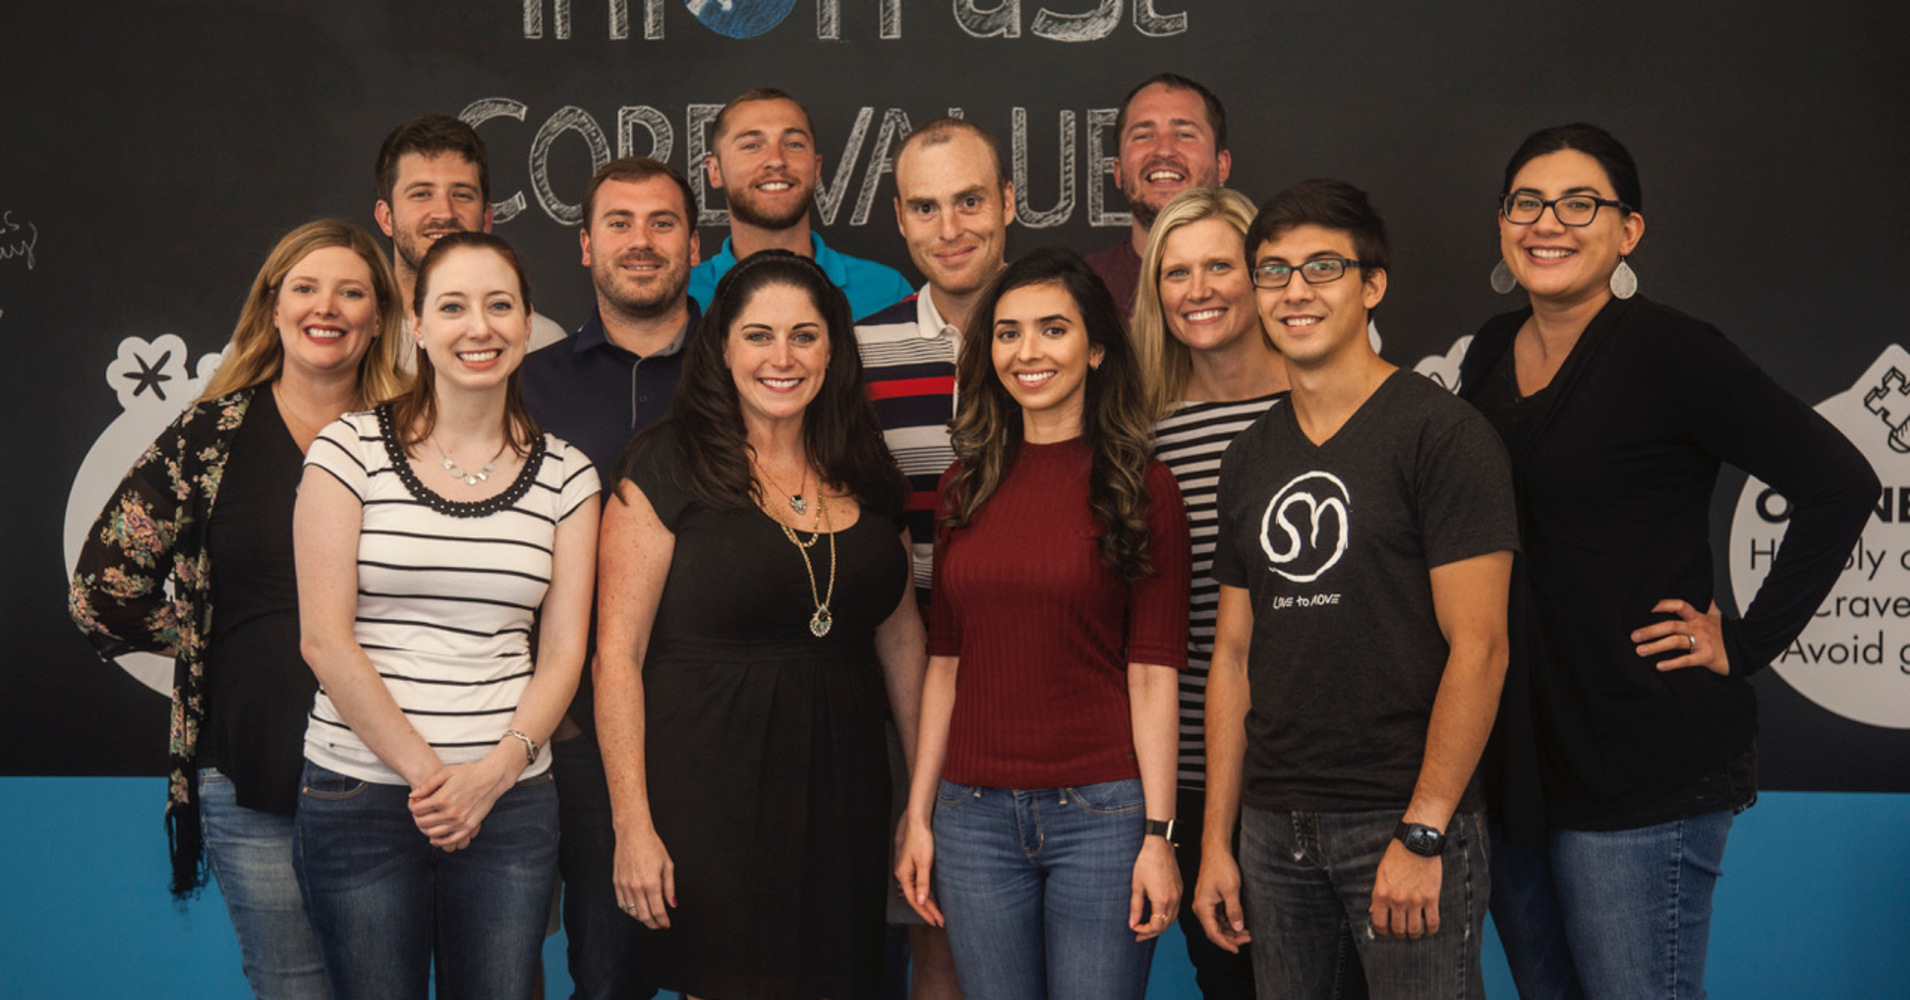 The InfoTrust Team